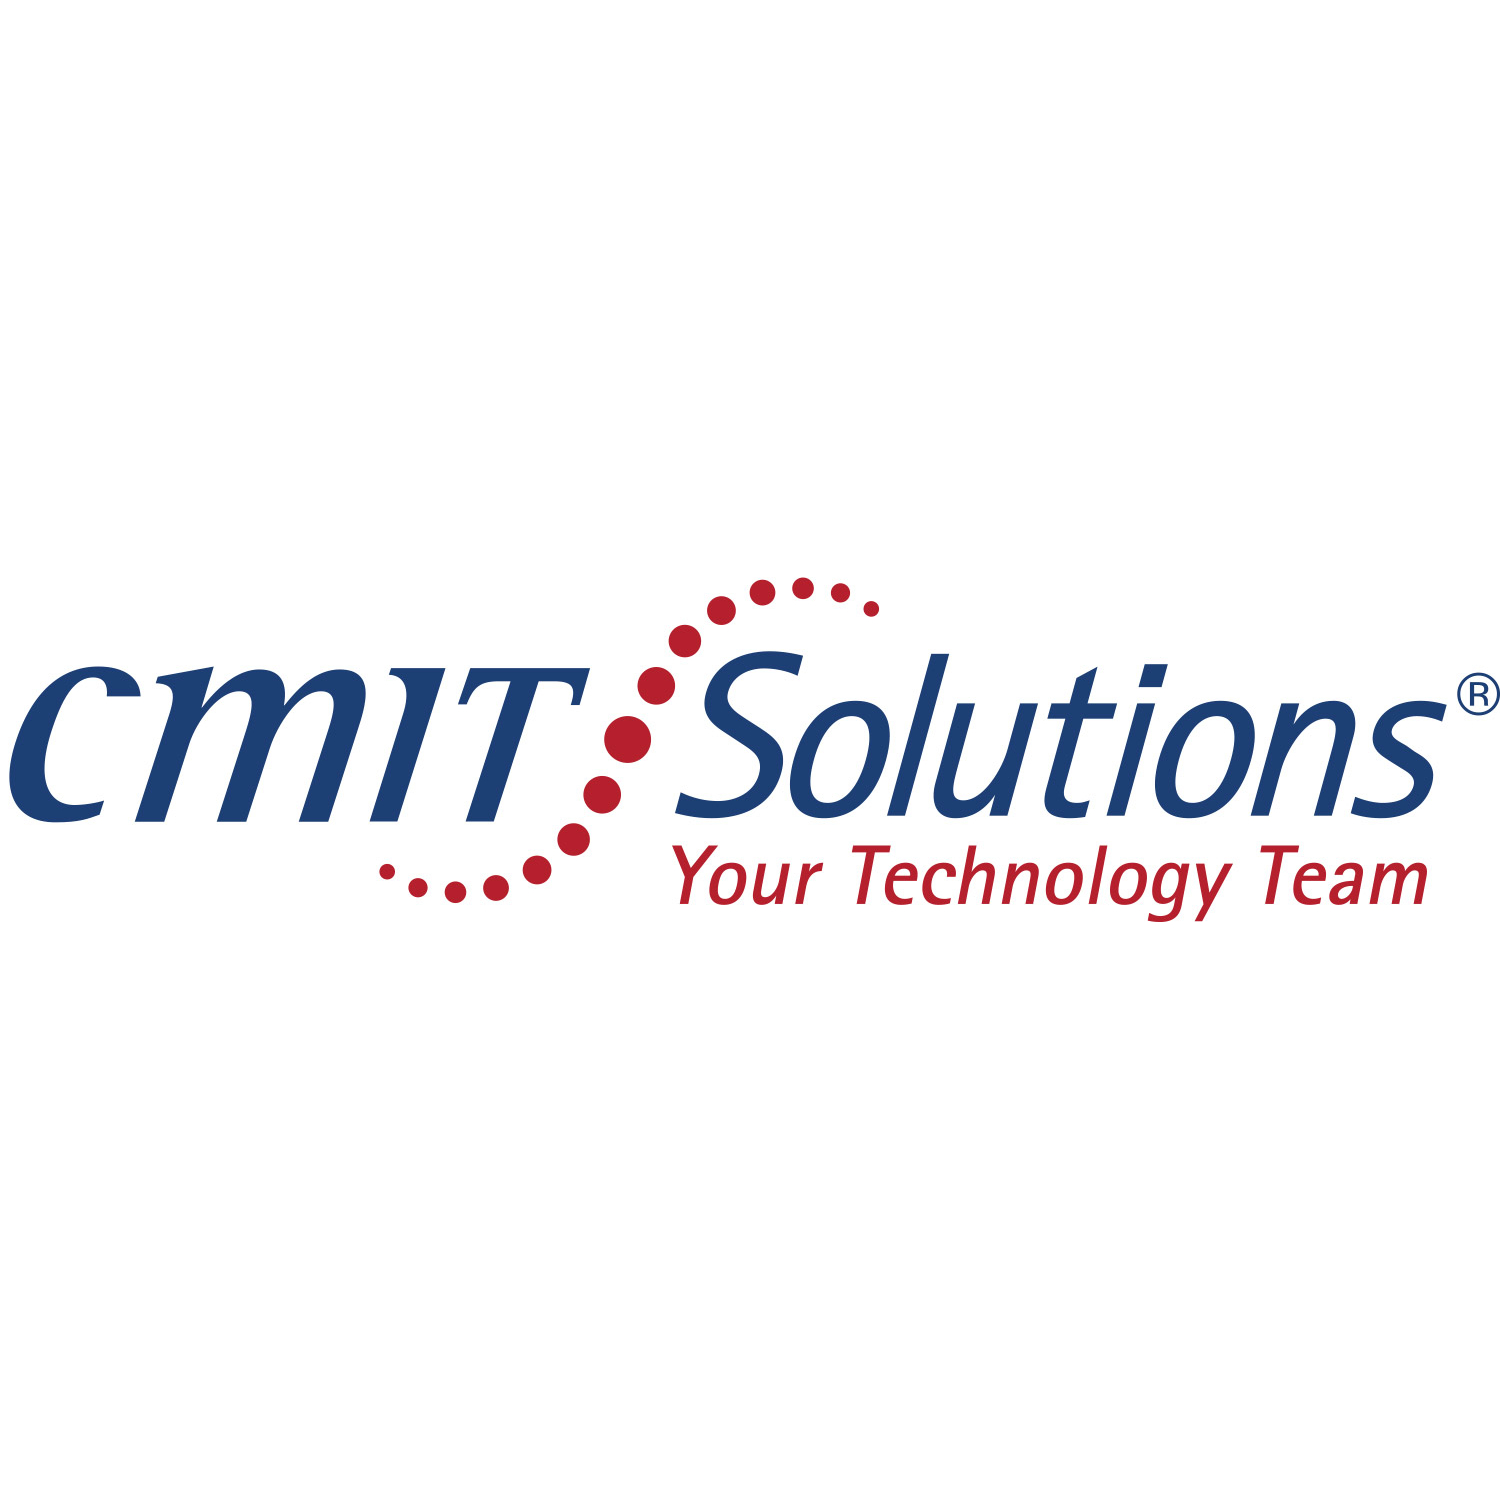 CMIT Solutions of Johns Creek, Duluth and Suwanee